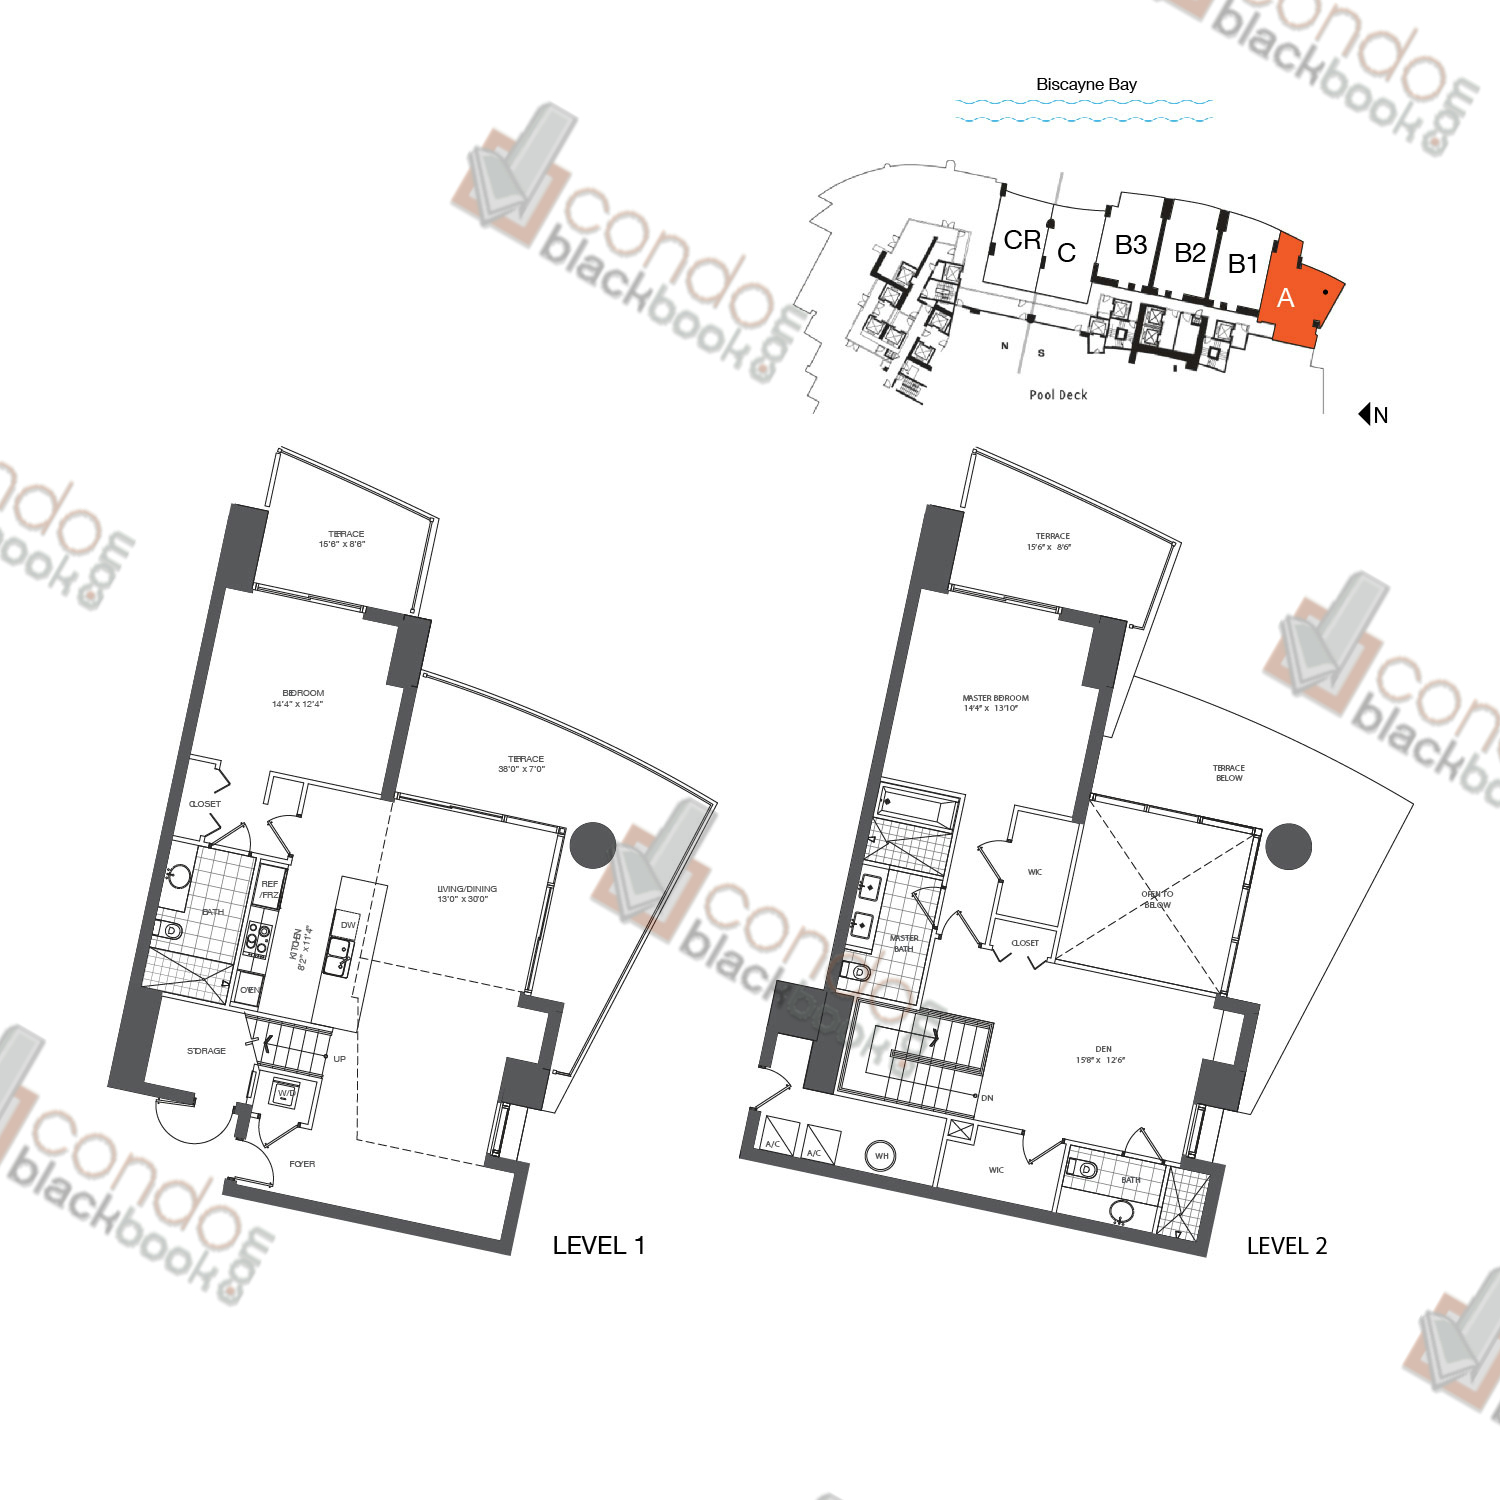 Floor plan for 900 Biscayne Bay Downtown Miami Miami, model TH A, line 01, 2/3+DEN bedrooms, 1,845 sq ft